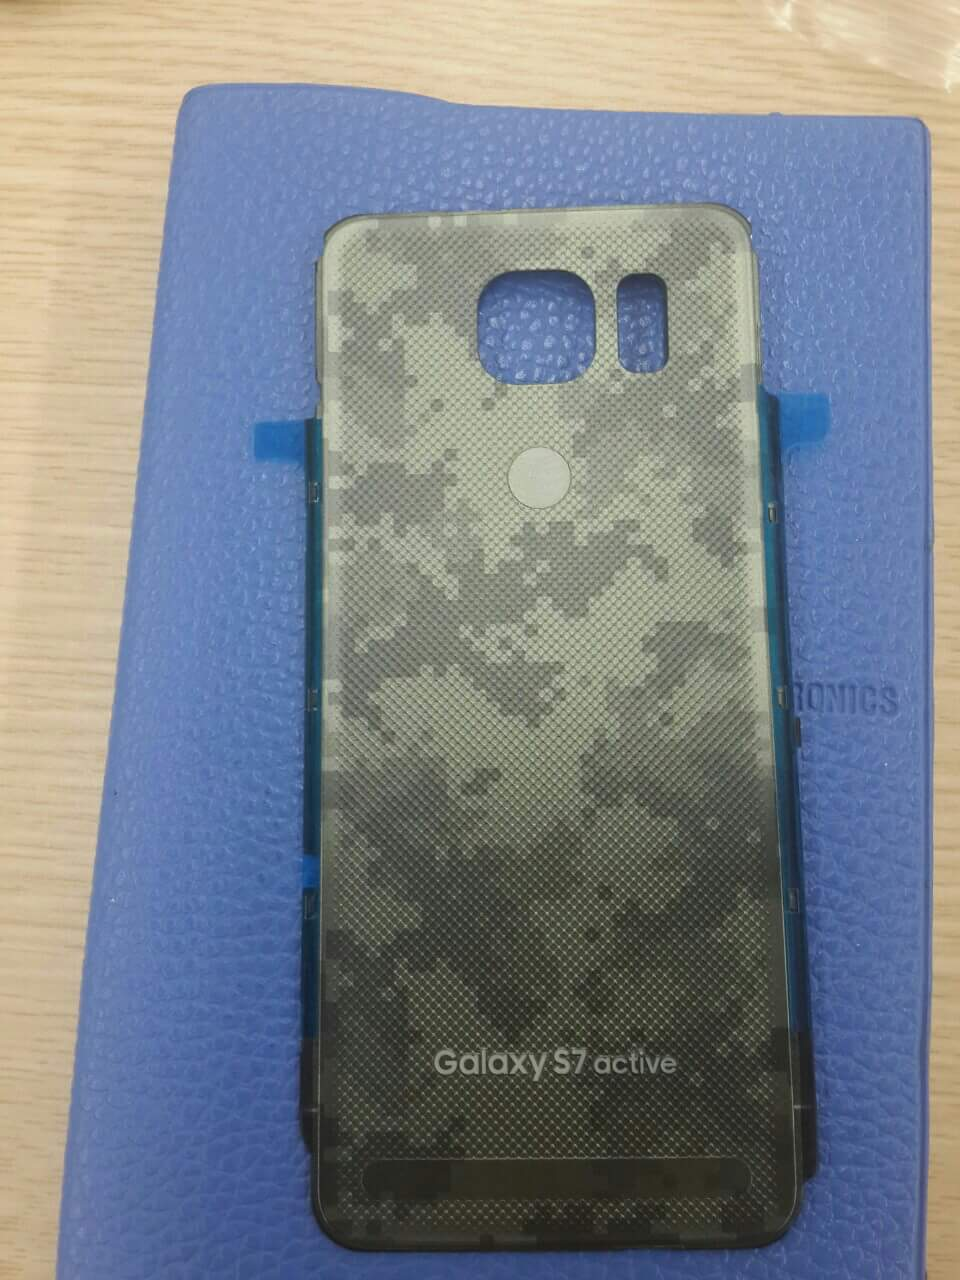 Samsung-Galaxy-S7-Active-leaked-photos (3)